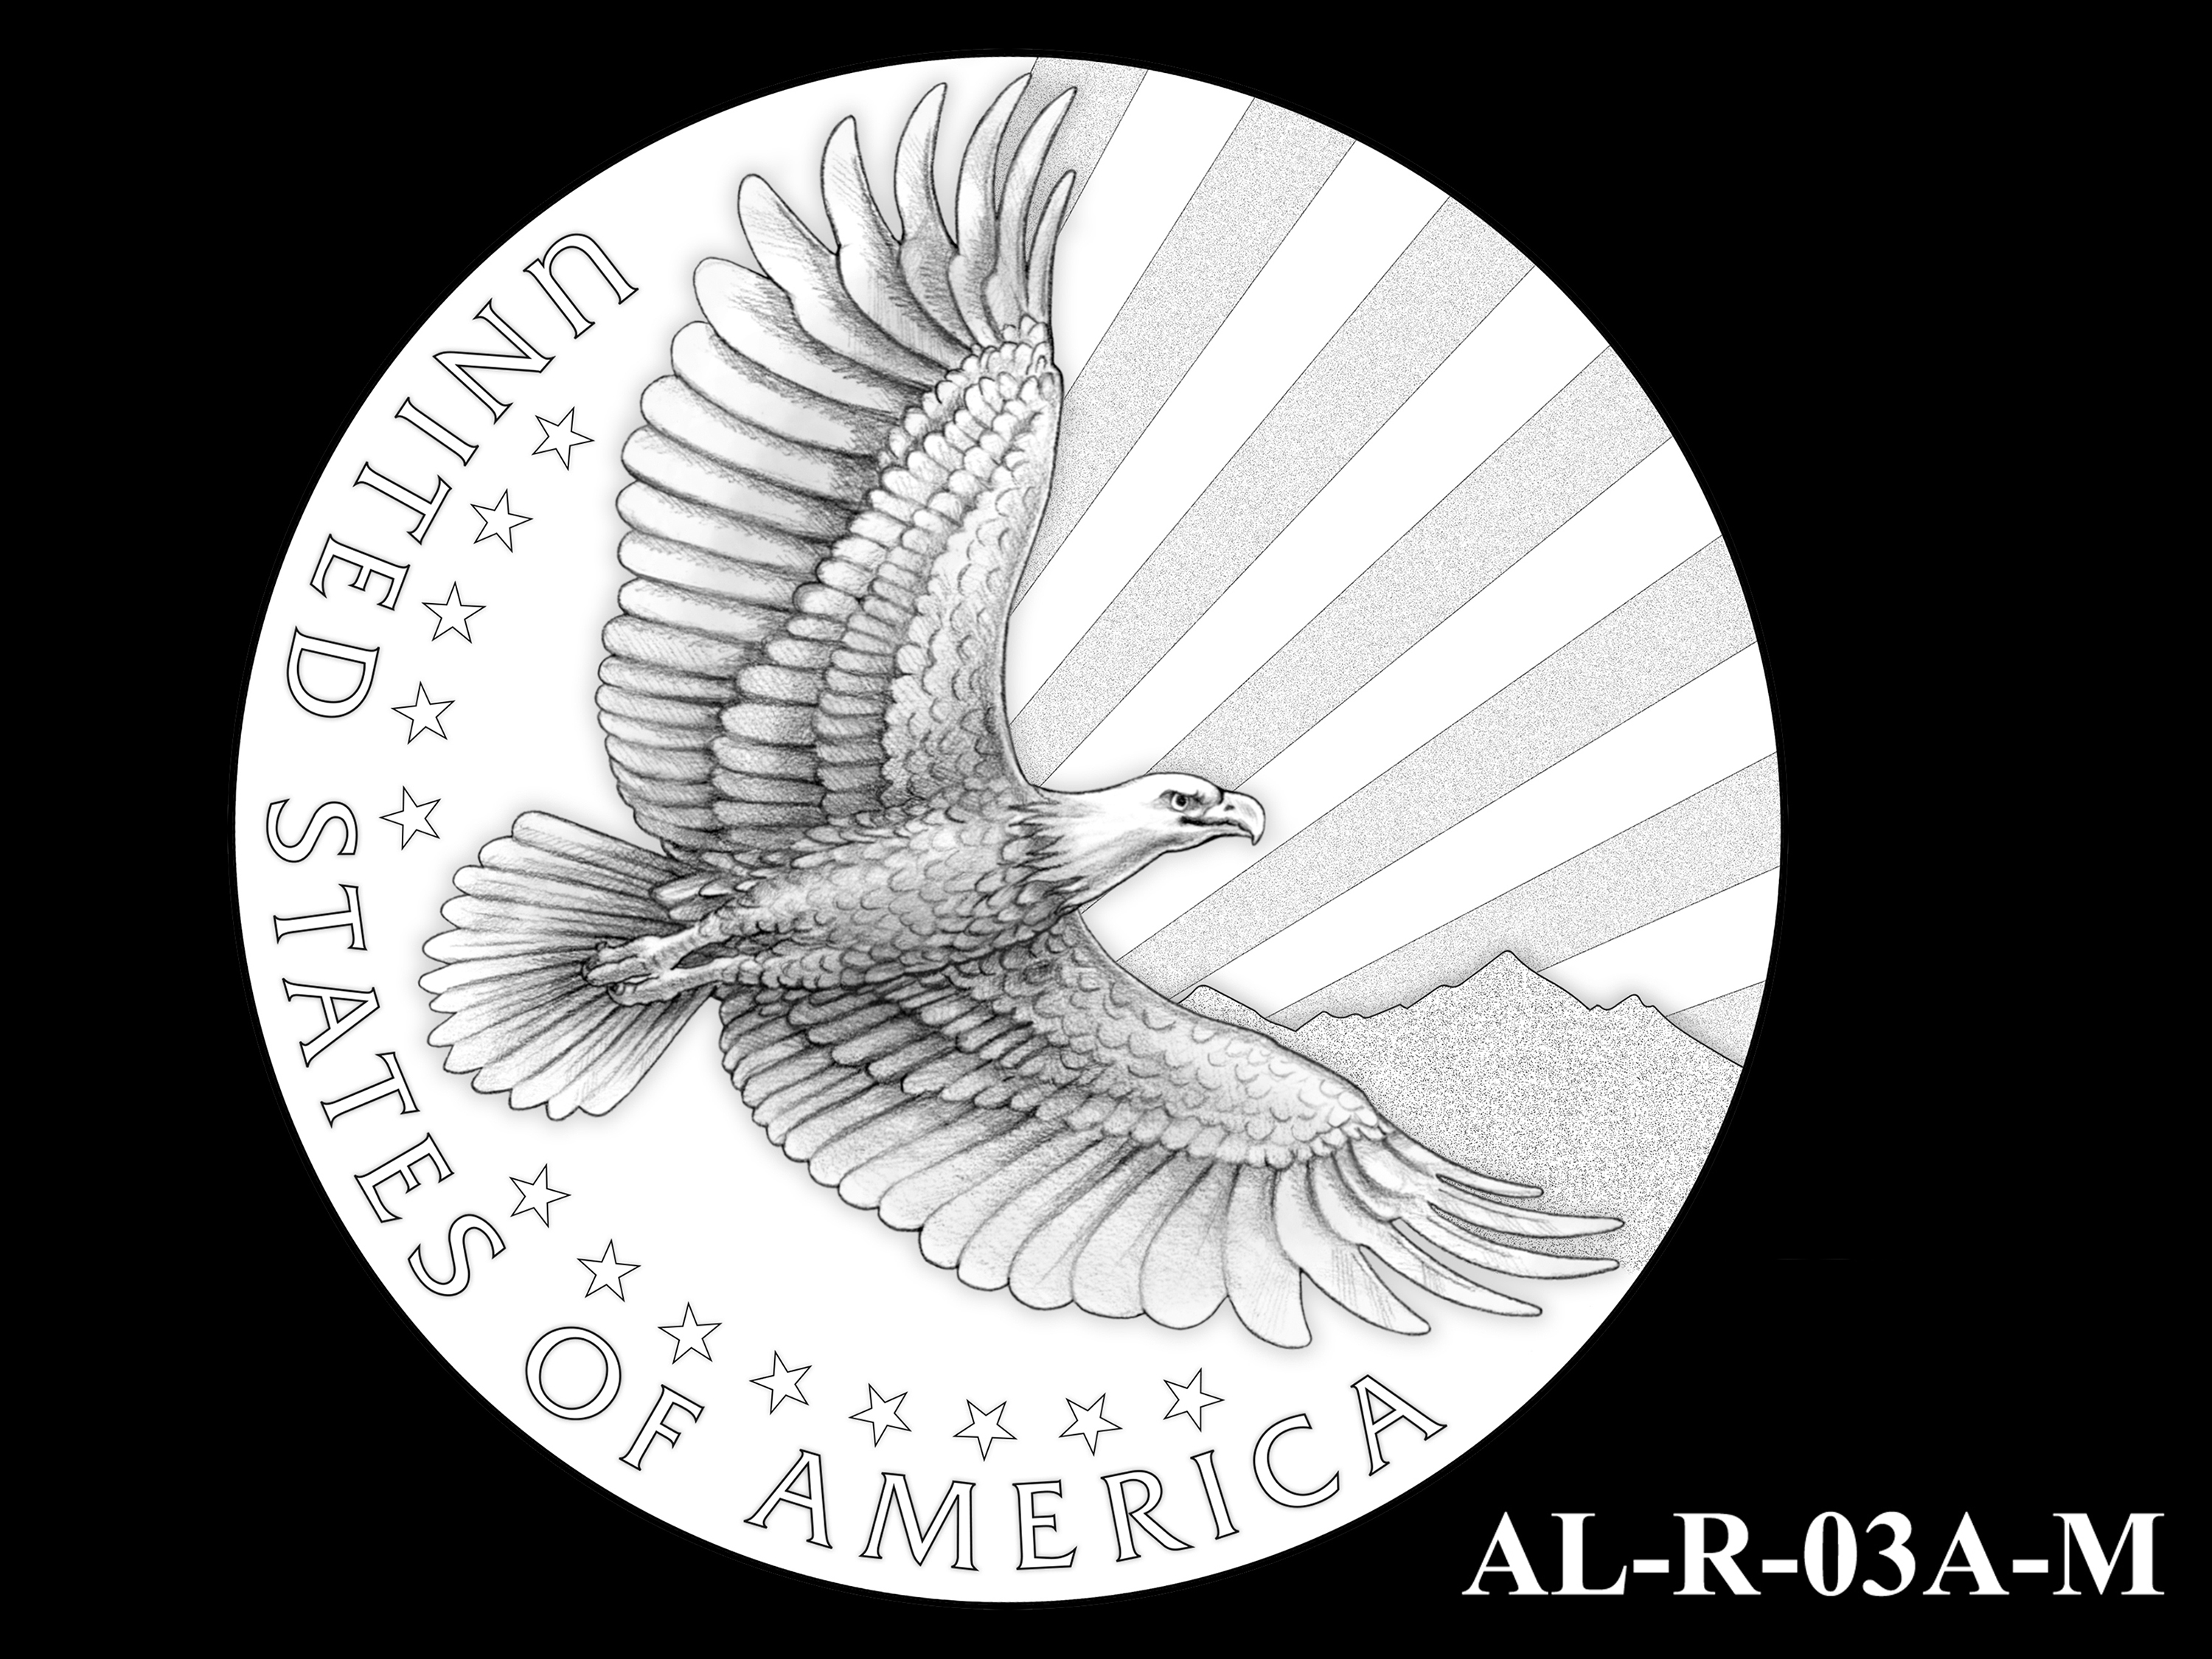 AL-R-03A-M -- 2021 American Liberty Gold Coin and Silver Medal Program - Reverse